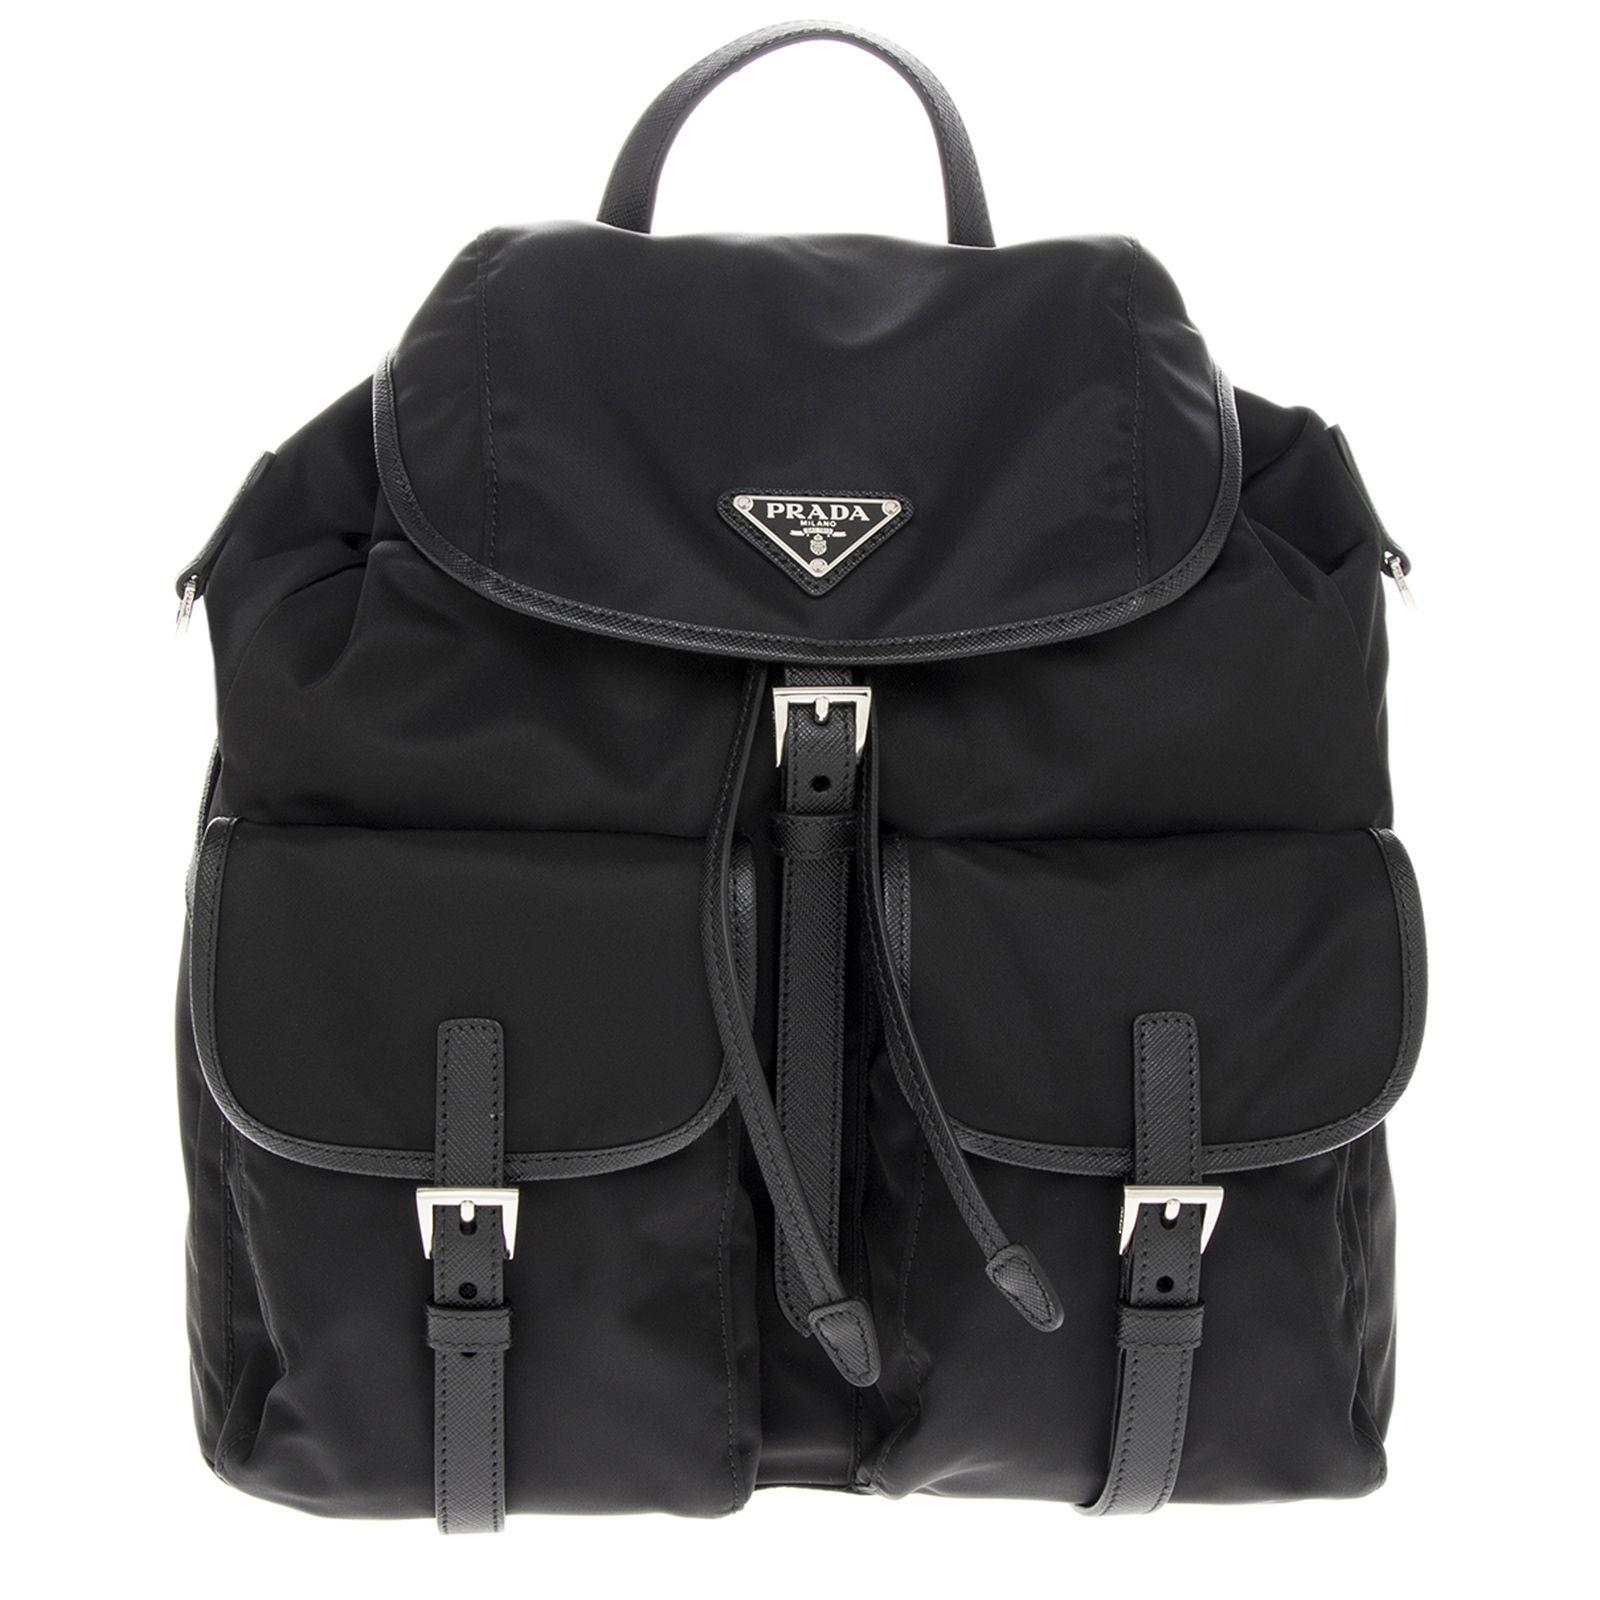 69691d9f70dc ... cheap prada backpacks on sale up to 70 off at tradesy 131e5 588f1